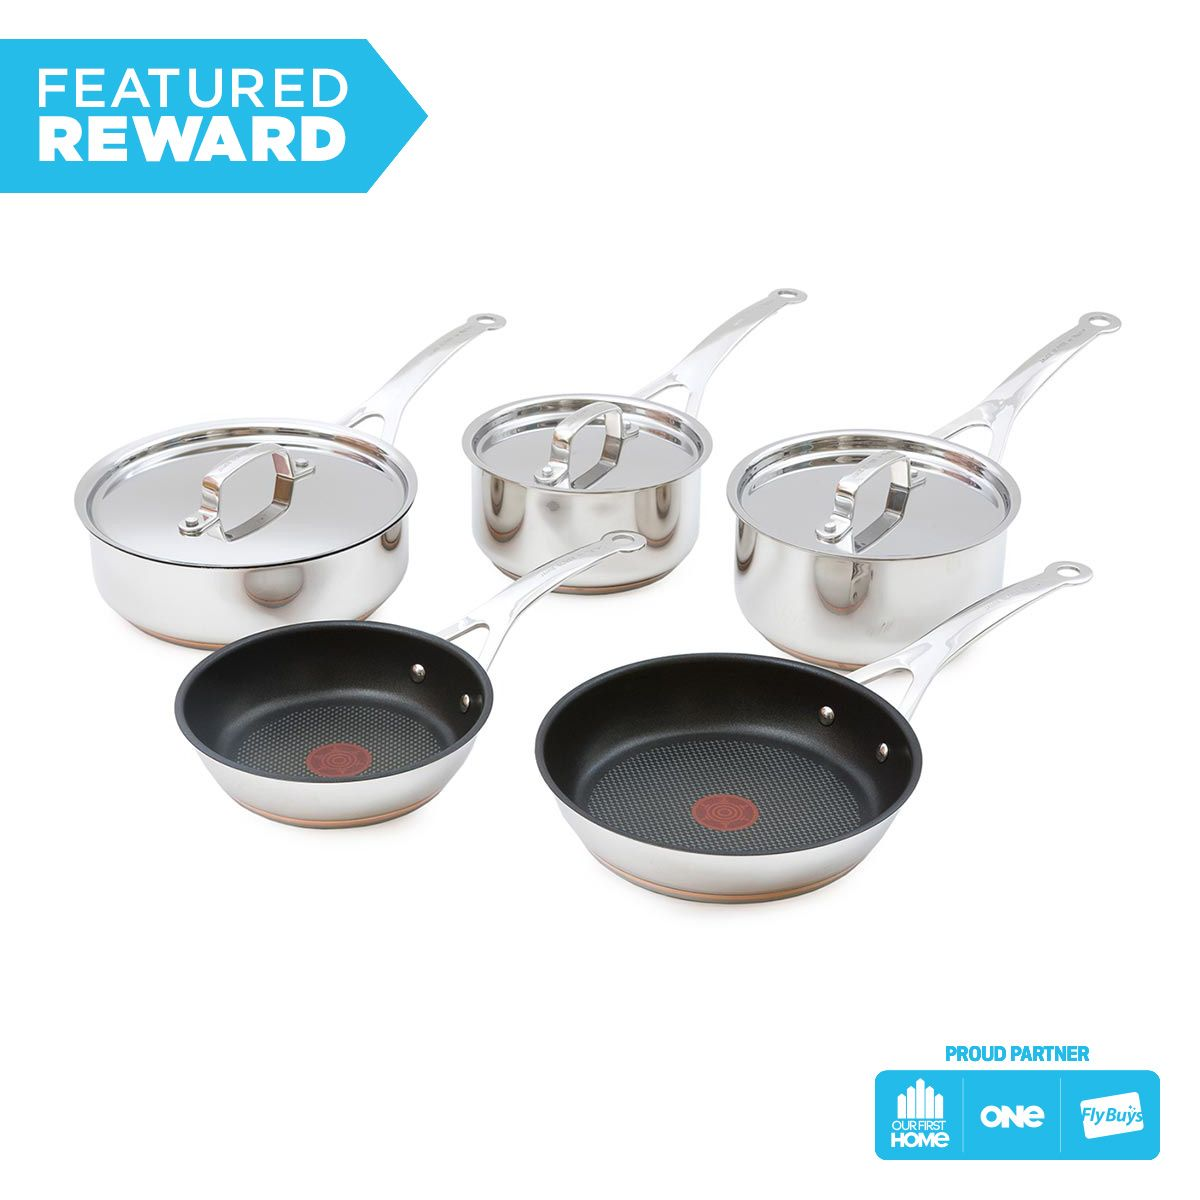 Jamie Oliver Tefal 5pc Stainless Steel Copper Cookware Set